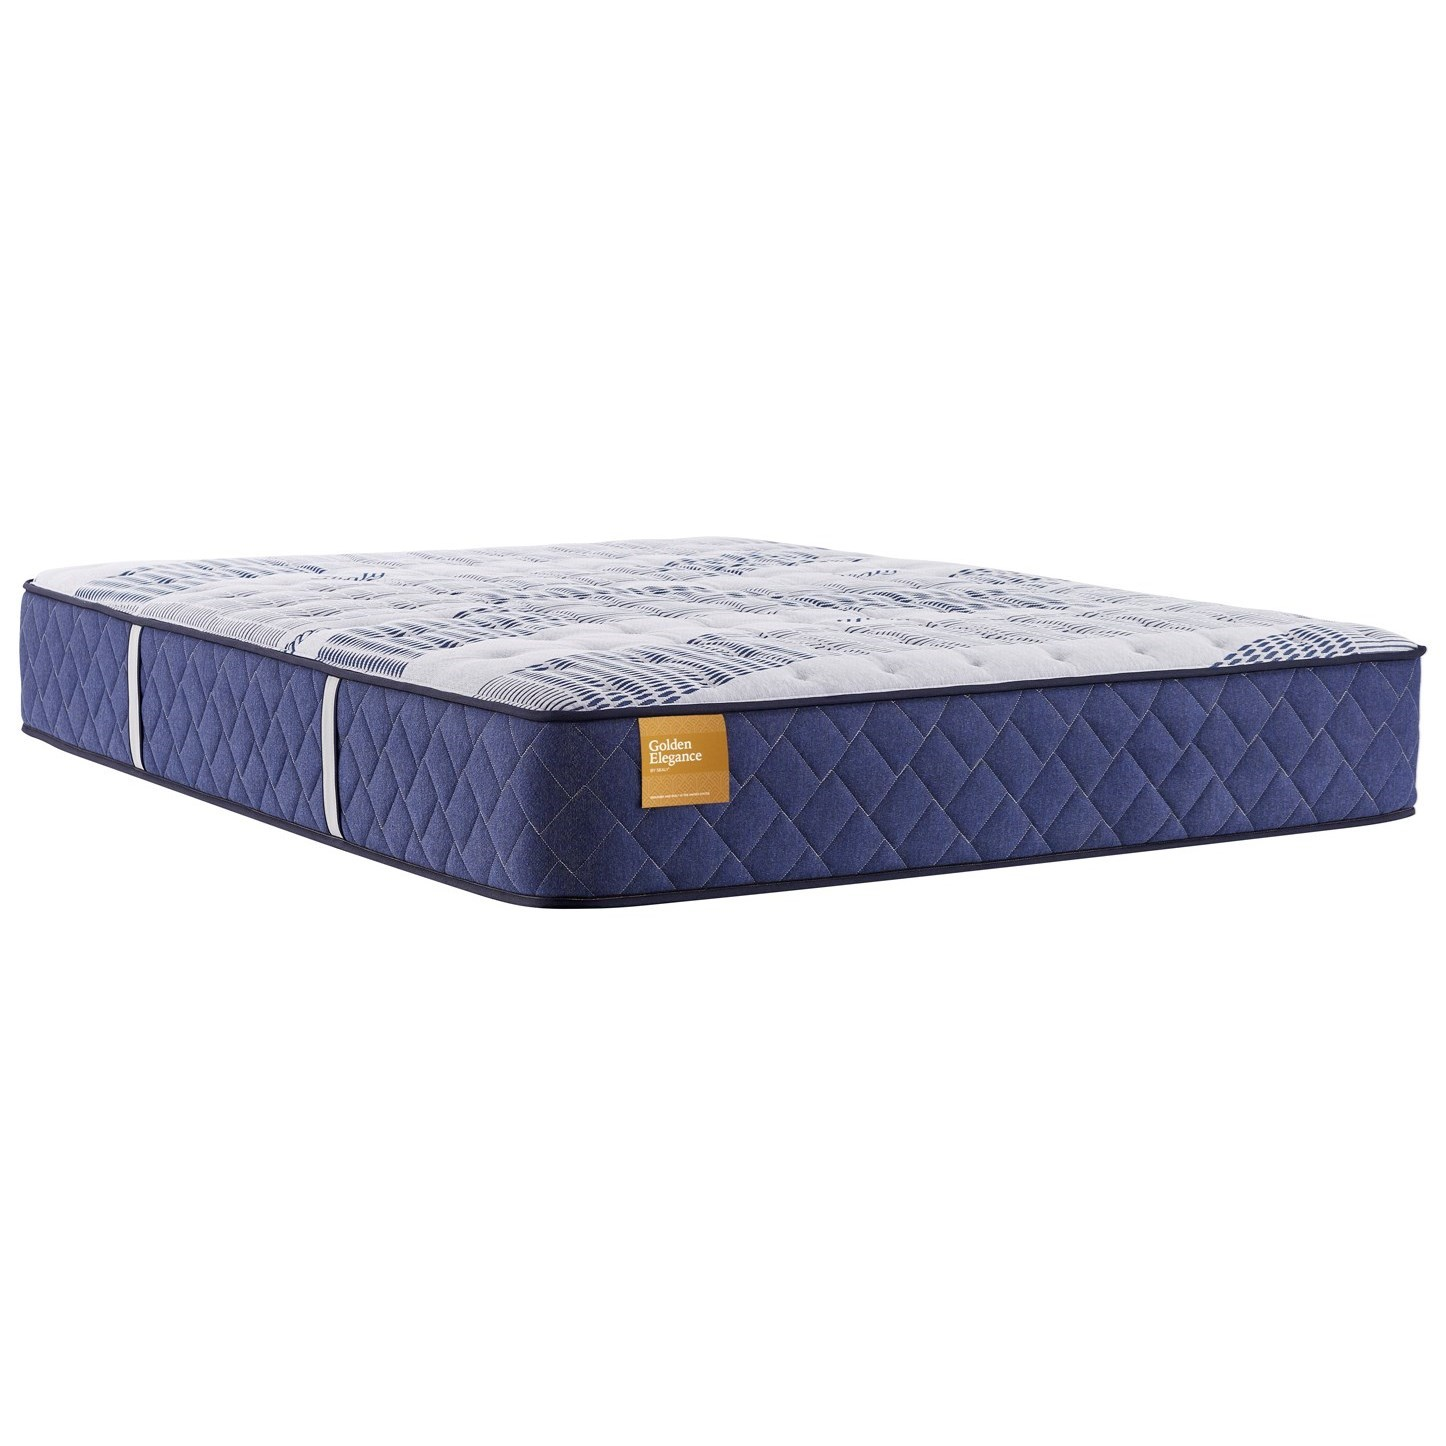 "Etherial Gold Plush TT B4 Queen 12 1/2"" Plush Mattress by Sealy at Beck's Furniture"